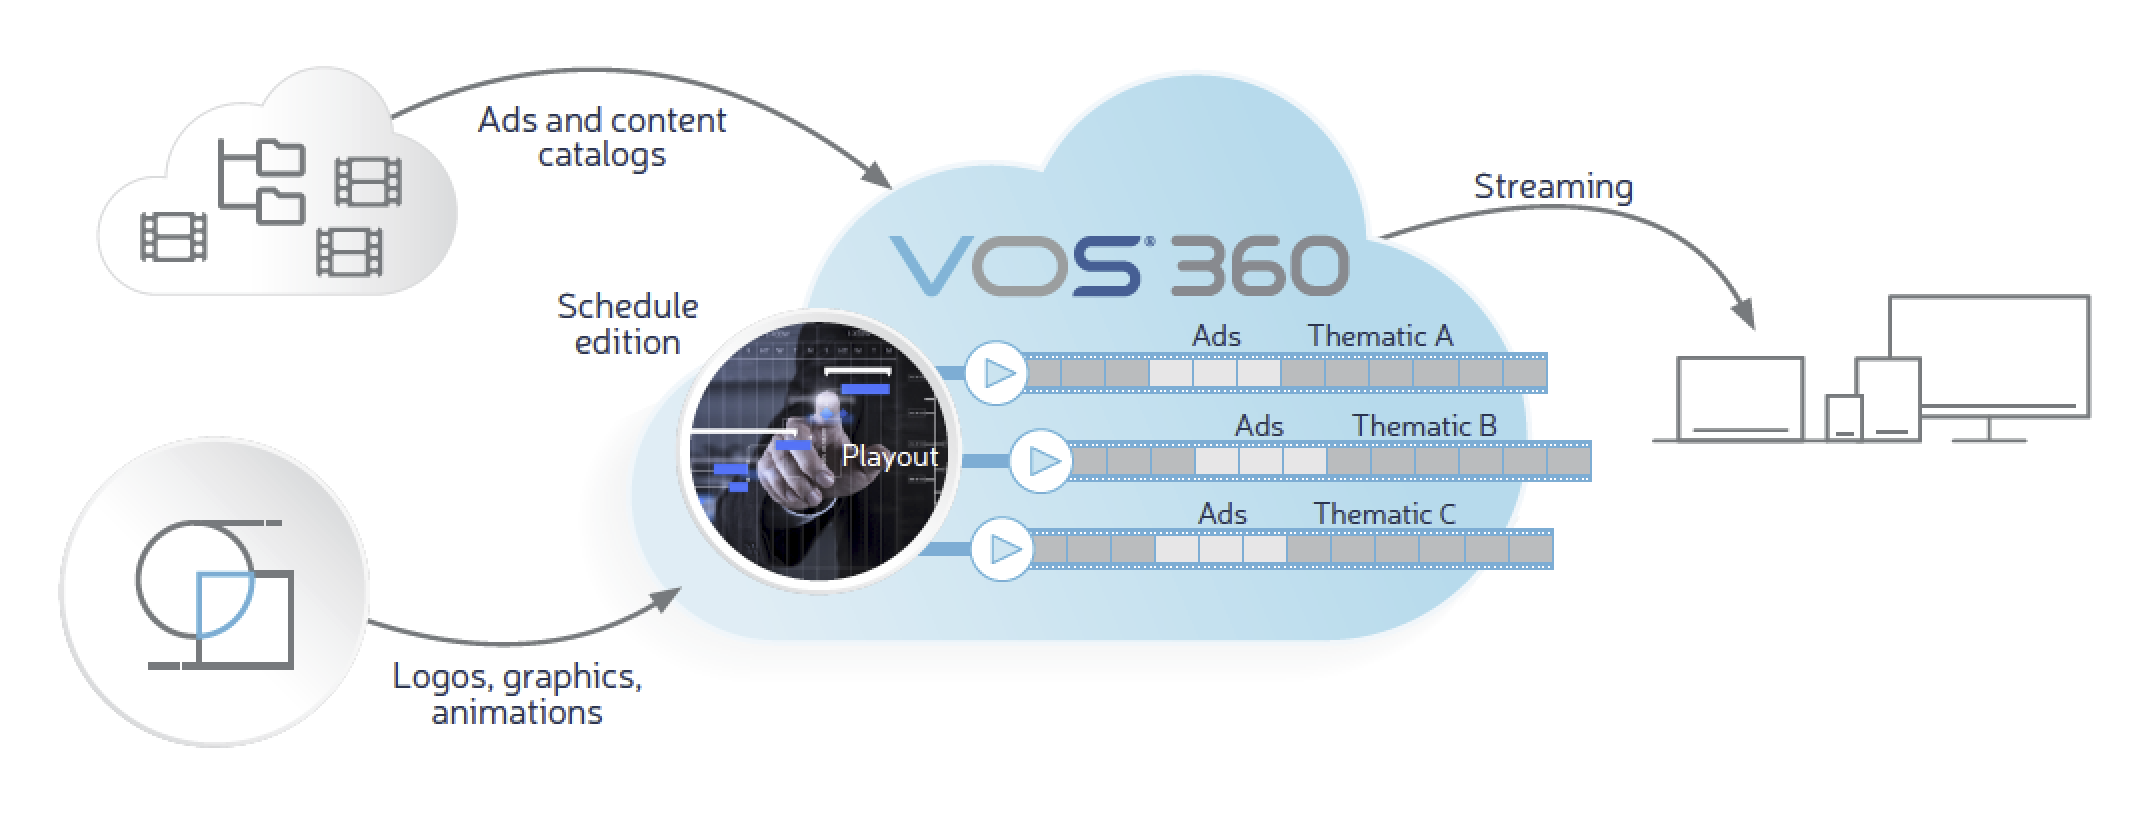 Thematic advertising linked to content catalogues – VOS®360 cloud-native media processing platform